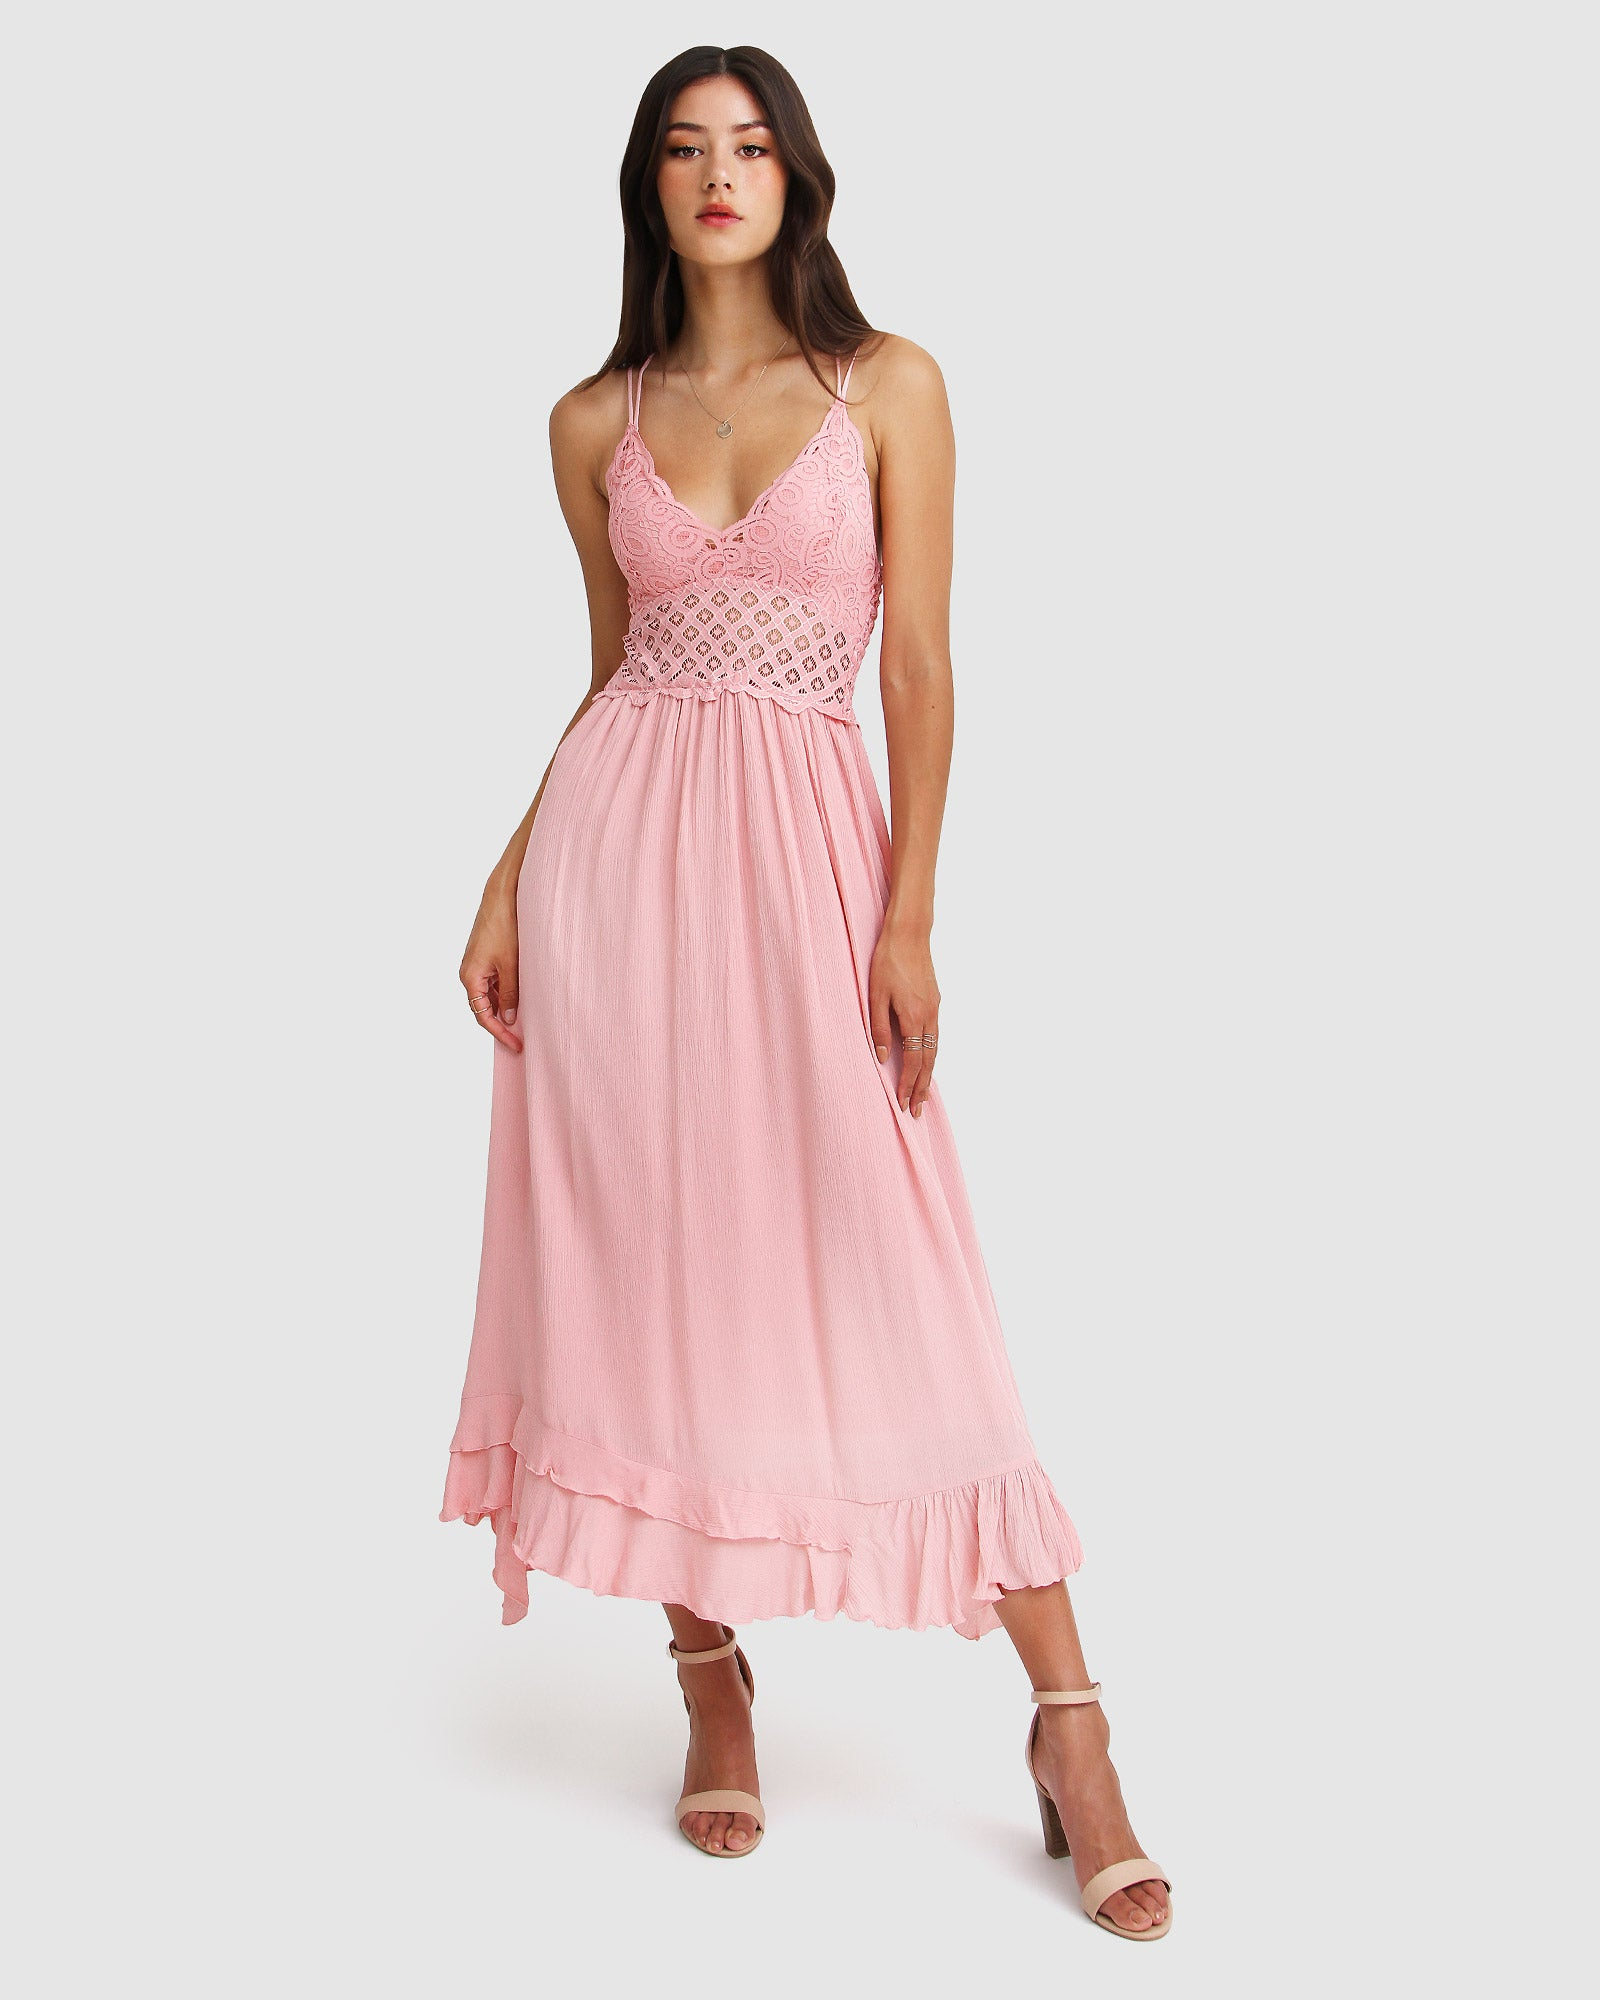 Lost In You Maxi Slip Dress - Blush